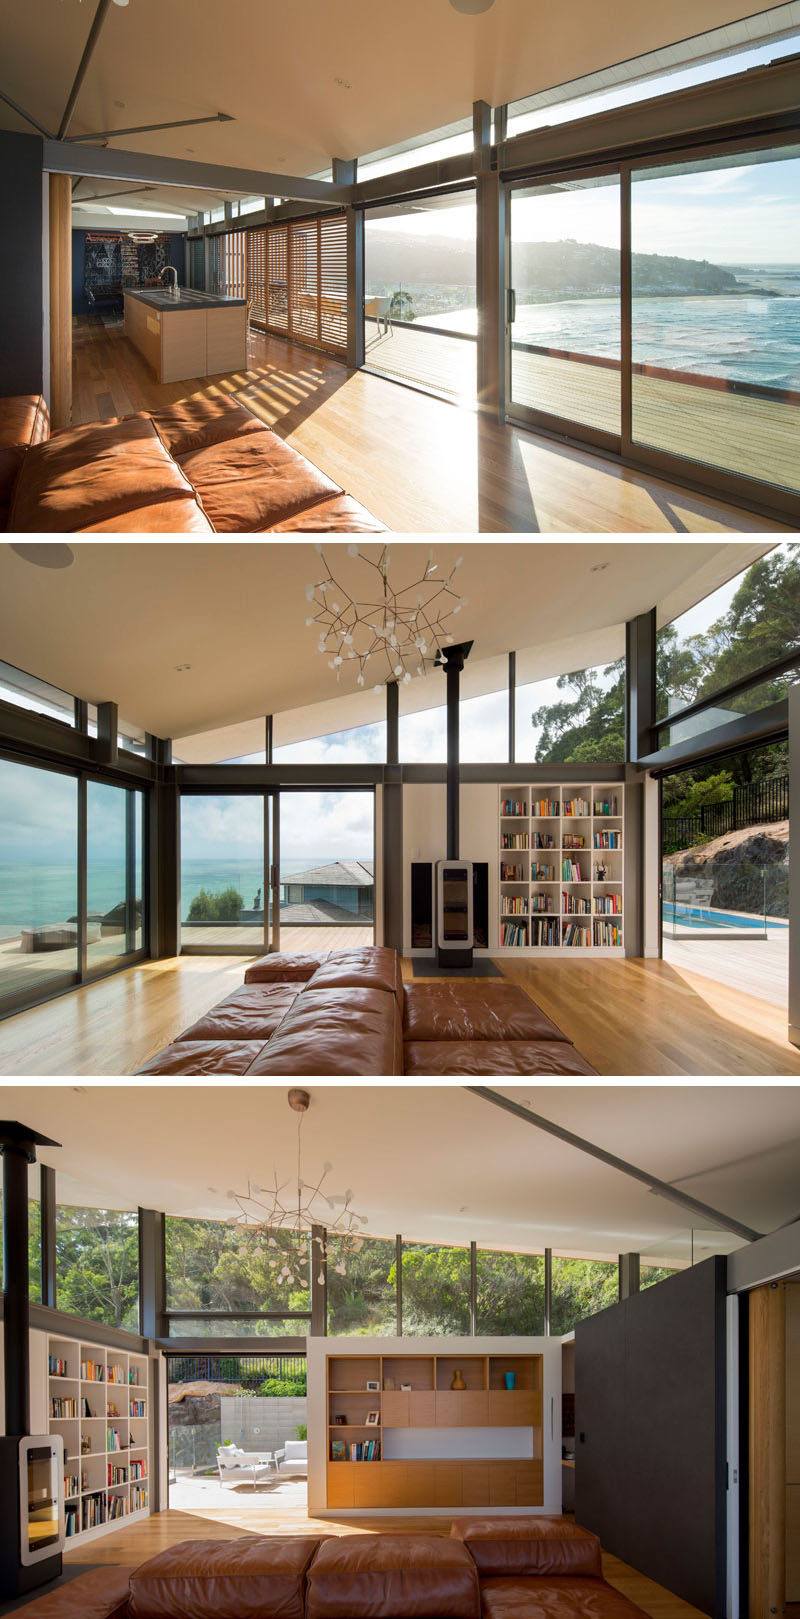 This modern living room has two sides, one that looks out towards the water, and the other that enjoys the fireplace and views of the rear deck and swimming pool. #LivingRoom #Fireplace #Shelving #Windows